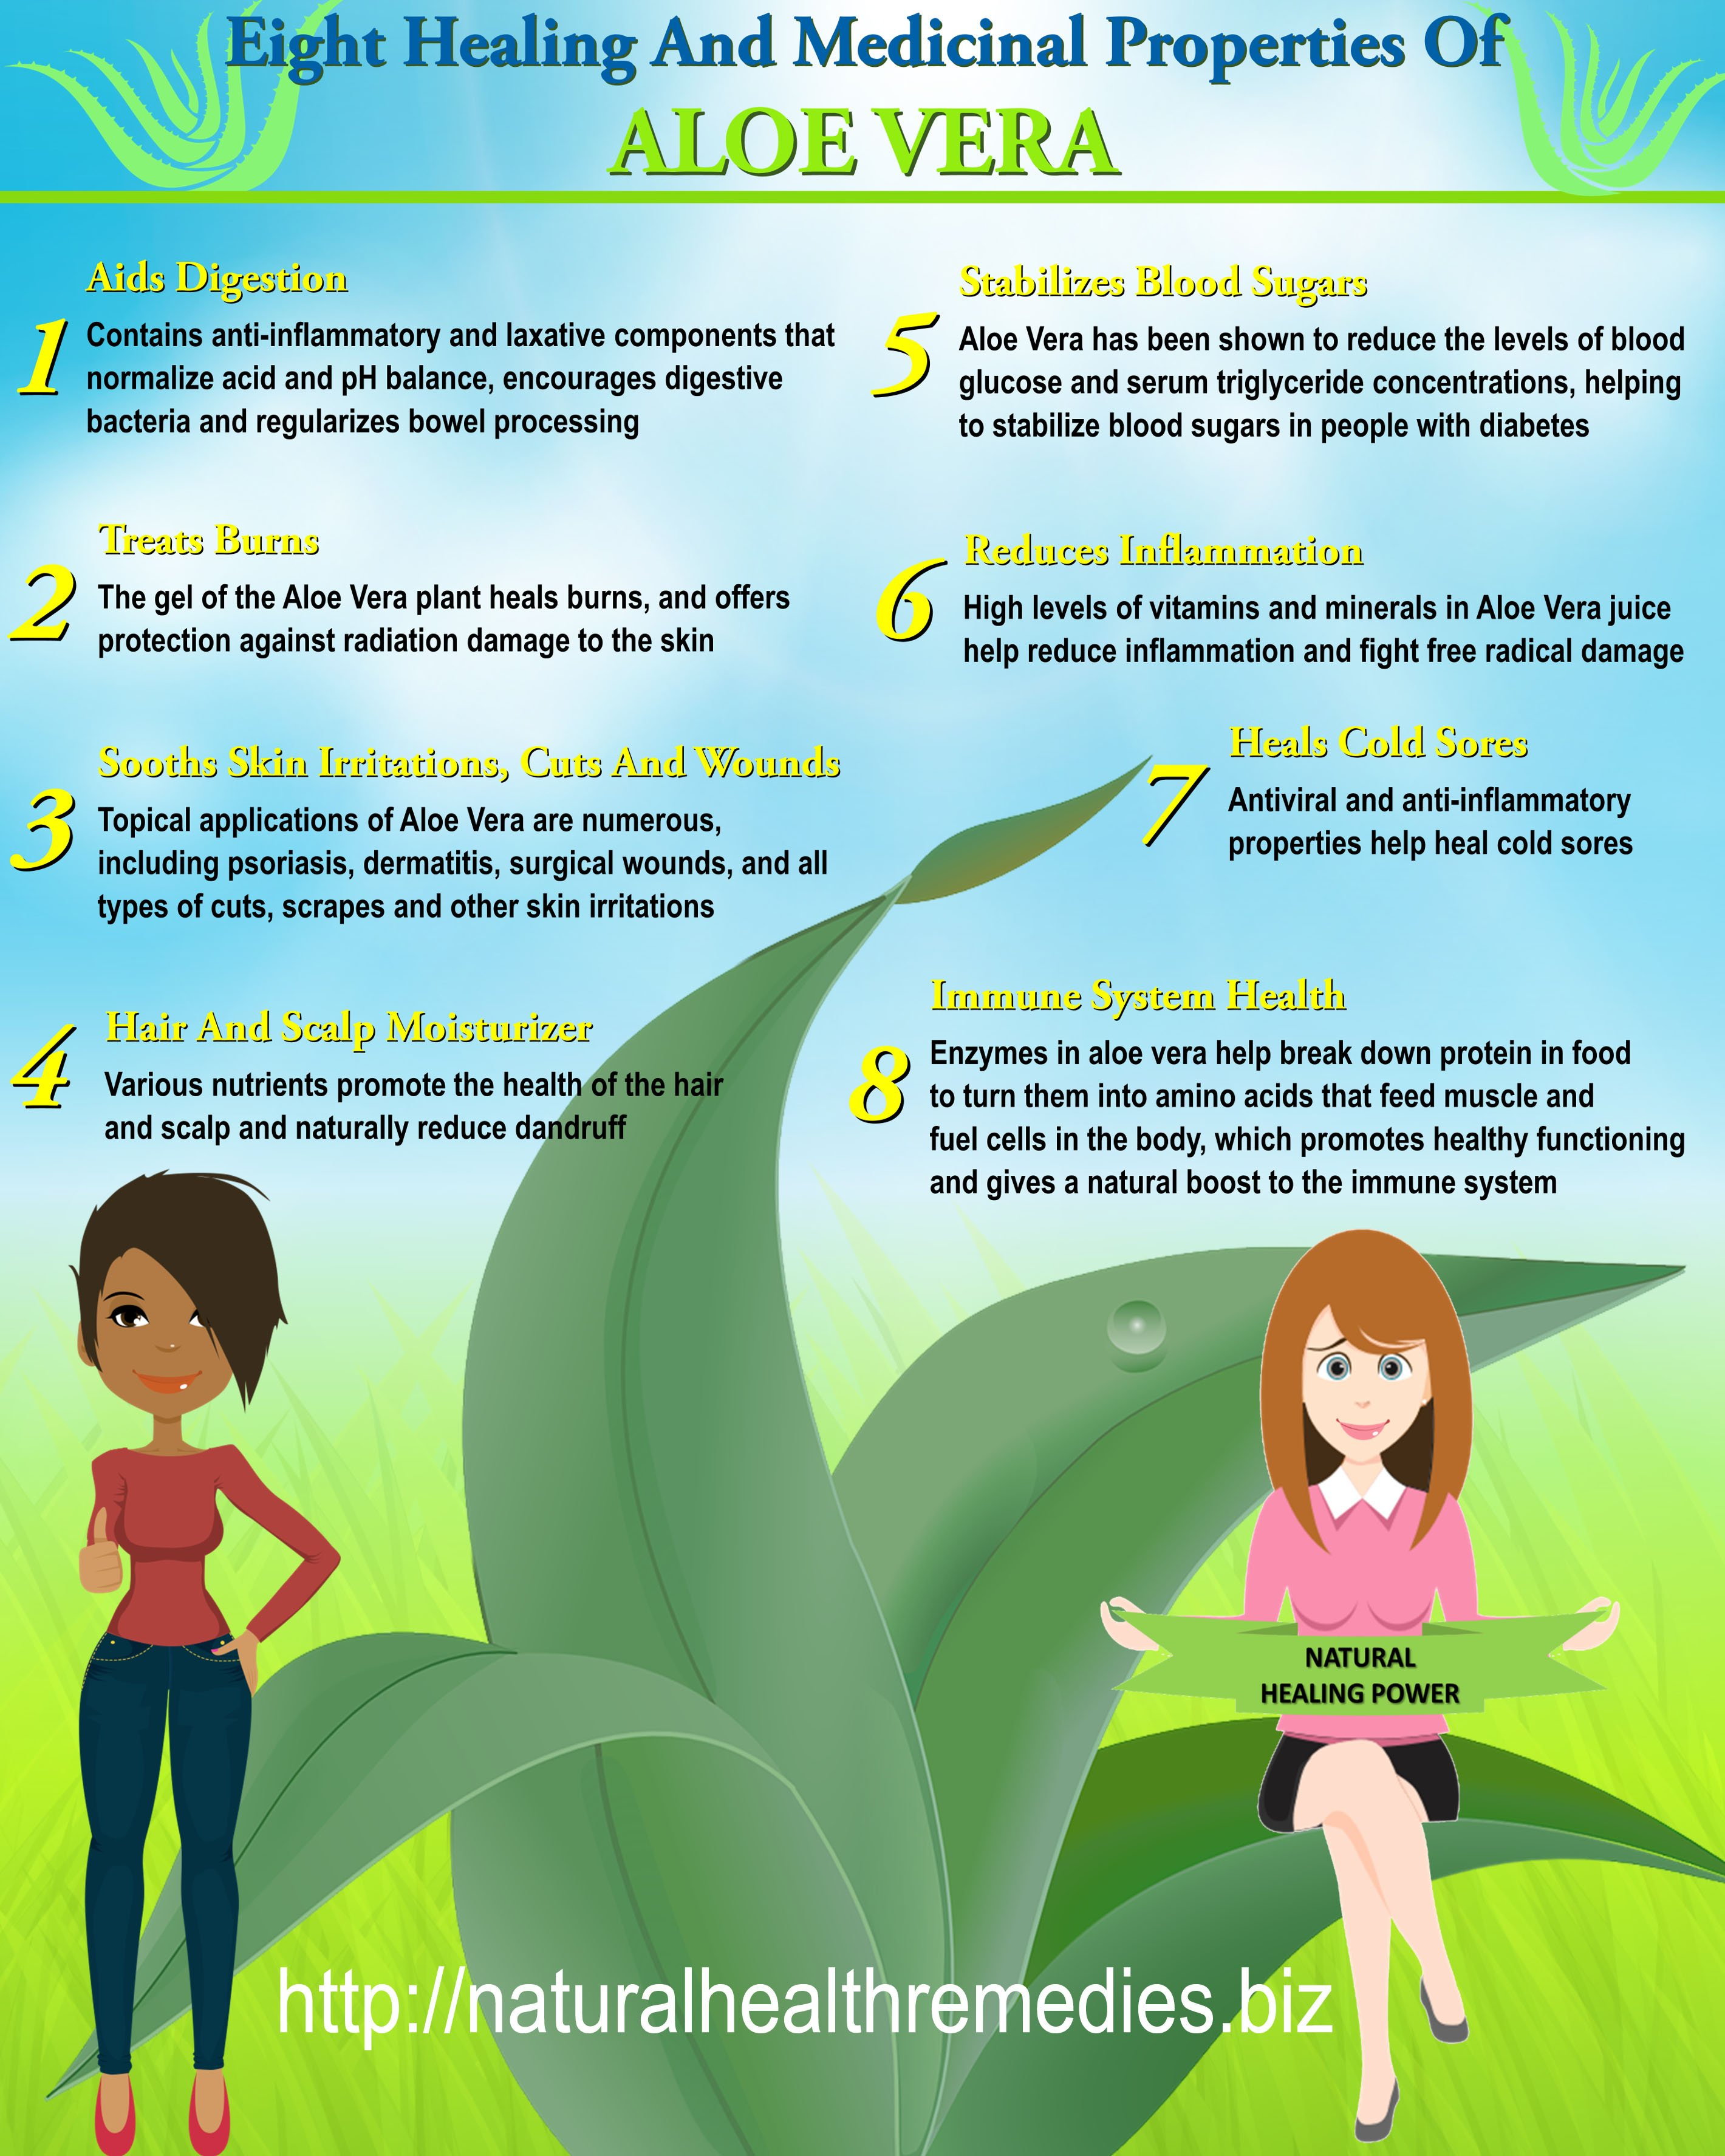 The Healing And Medicinal Properties Of Aloe Vera